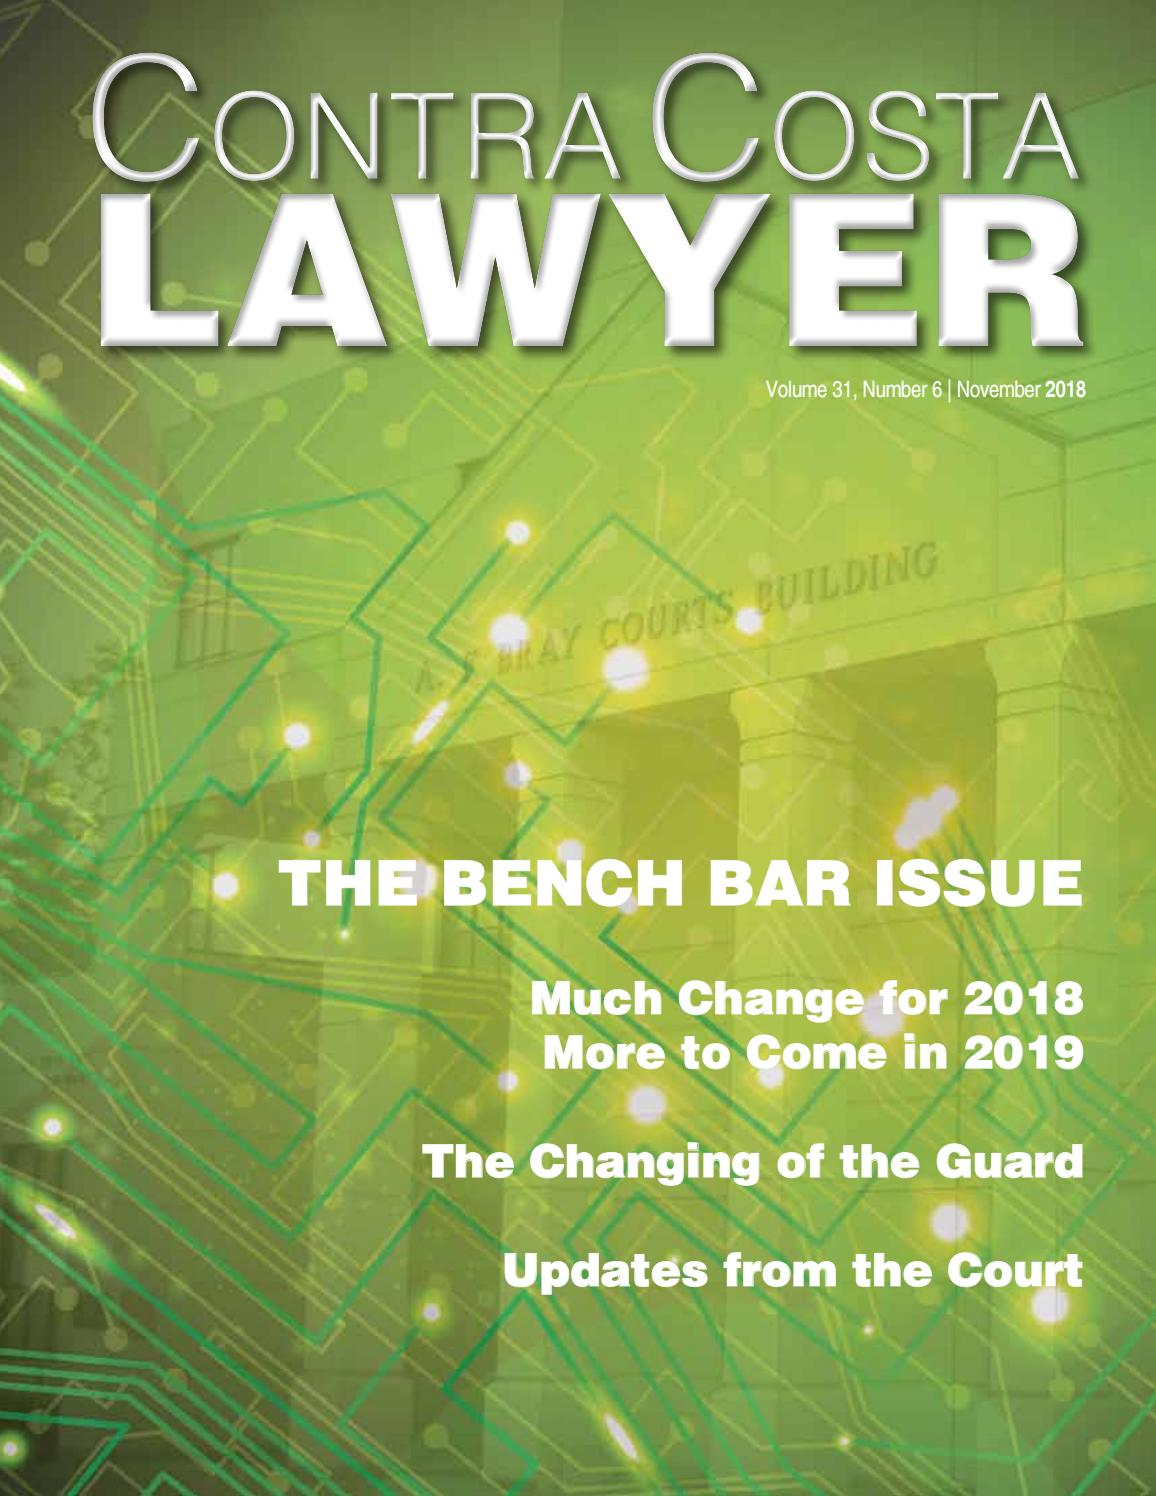 Contra Costa Lawyer - November 2018 - The Bench Bar Issue by